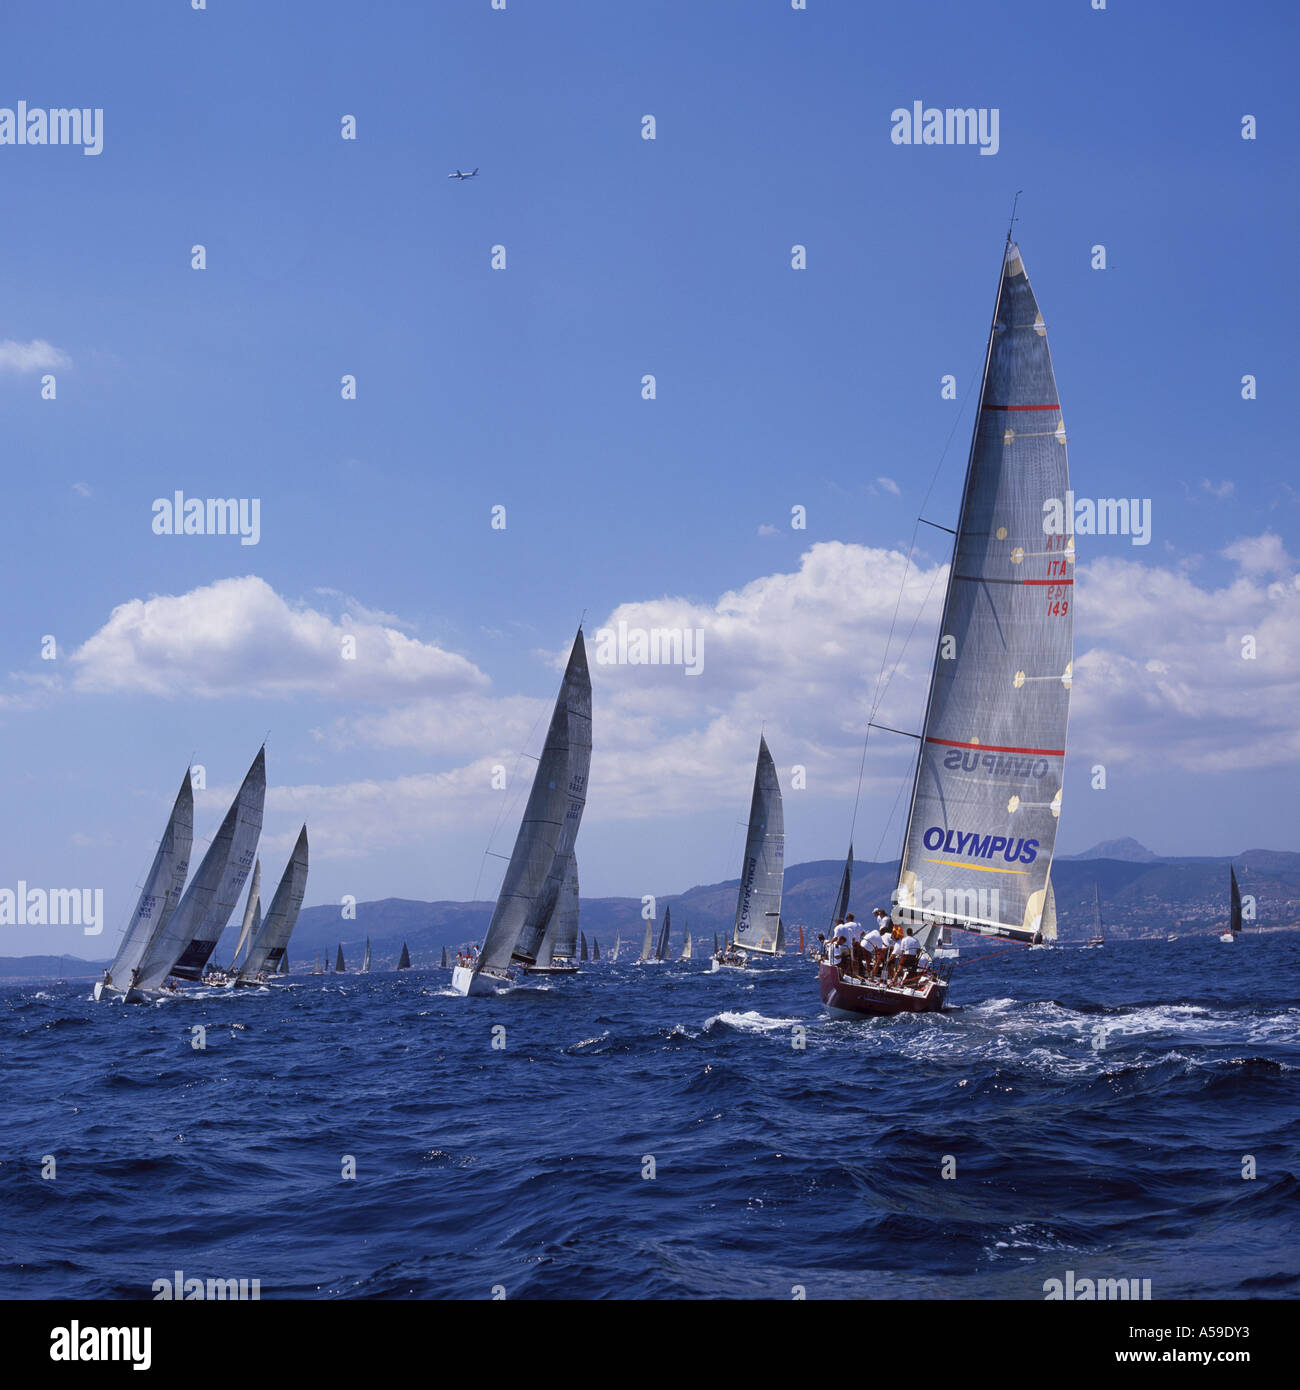 Scene with Olympus Orlando IMS 500 in the foreground during the 22nd Copa Del Rey Kings Cup Regatta 2003 in the Bay of Palma de - Stock Image